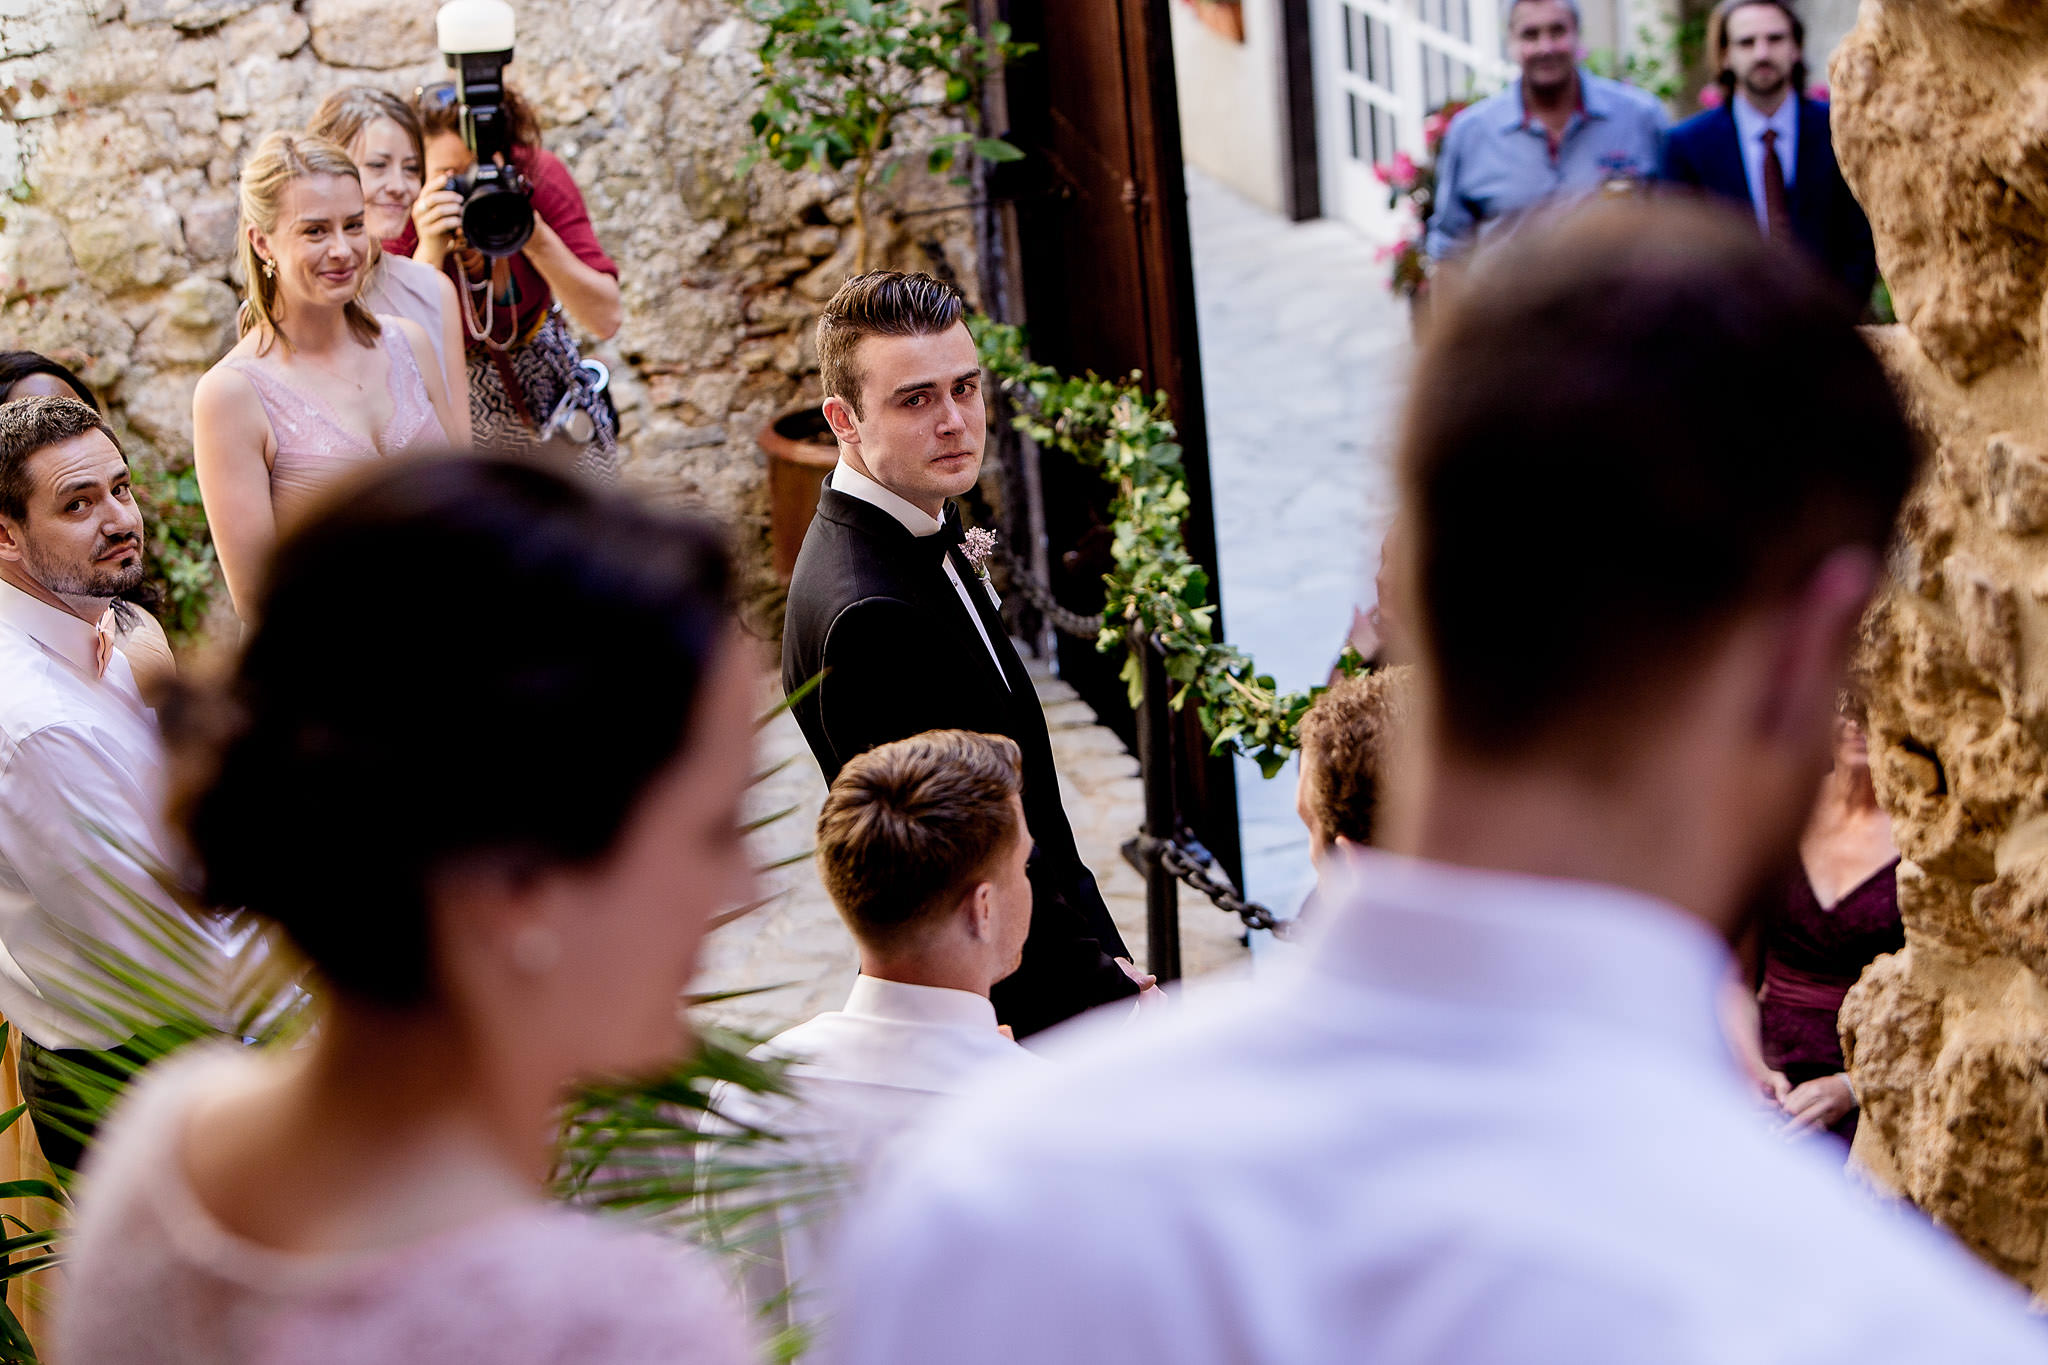 Emotional Groom during wedding ceremony at Chateau Zen near Montpellier